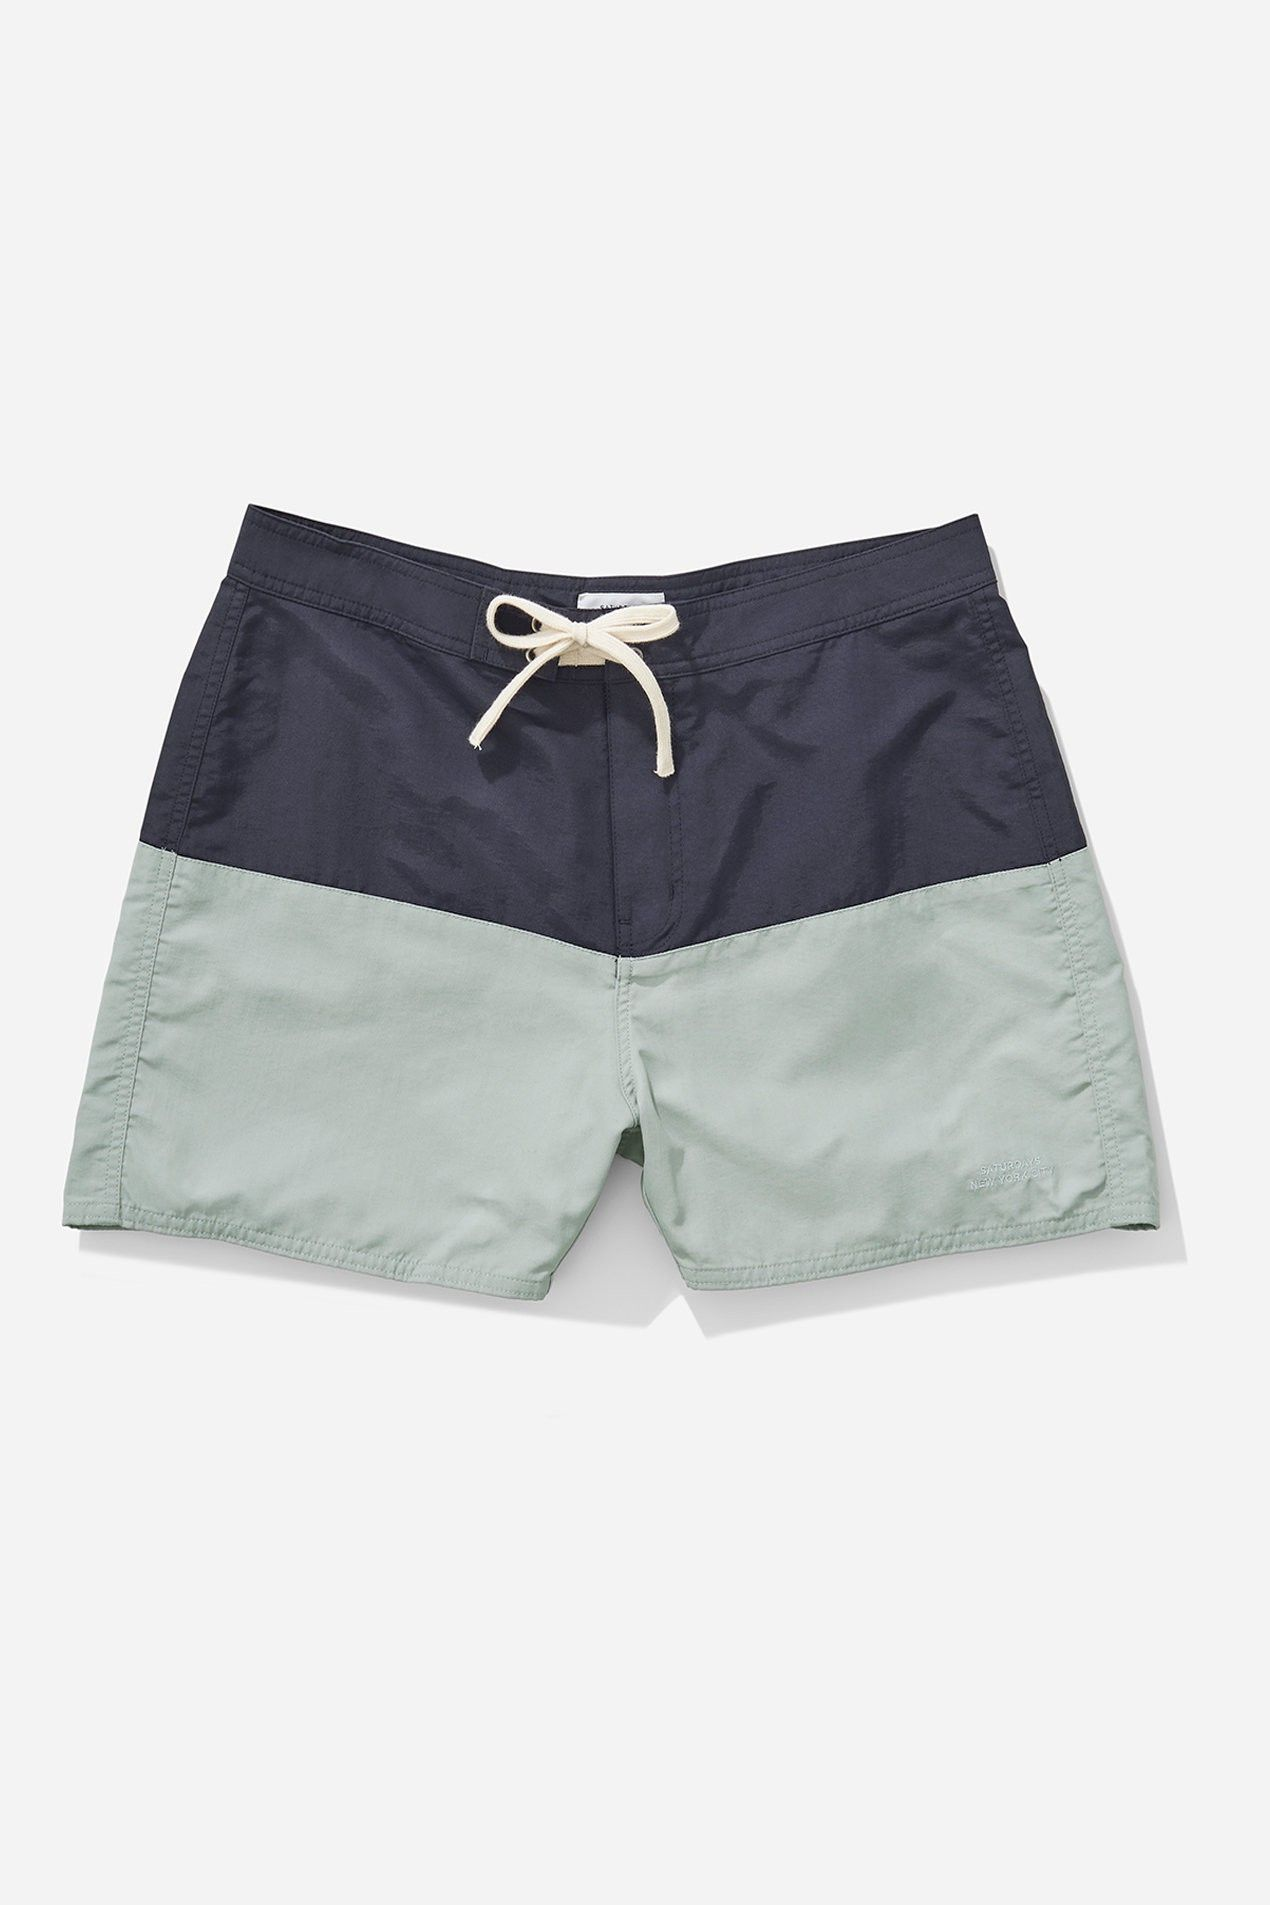 720b2ff2d8 Saturdays Nyc Ennis Boardshort Midnight/Stone Blue - 28 | Products ...